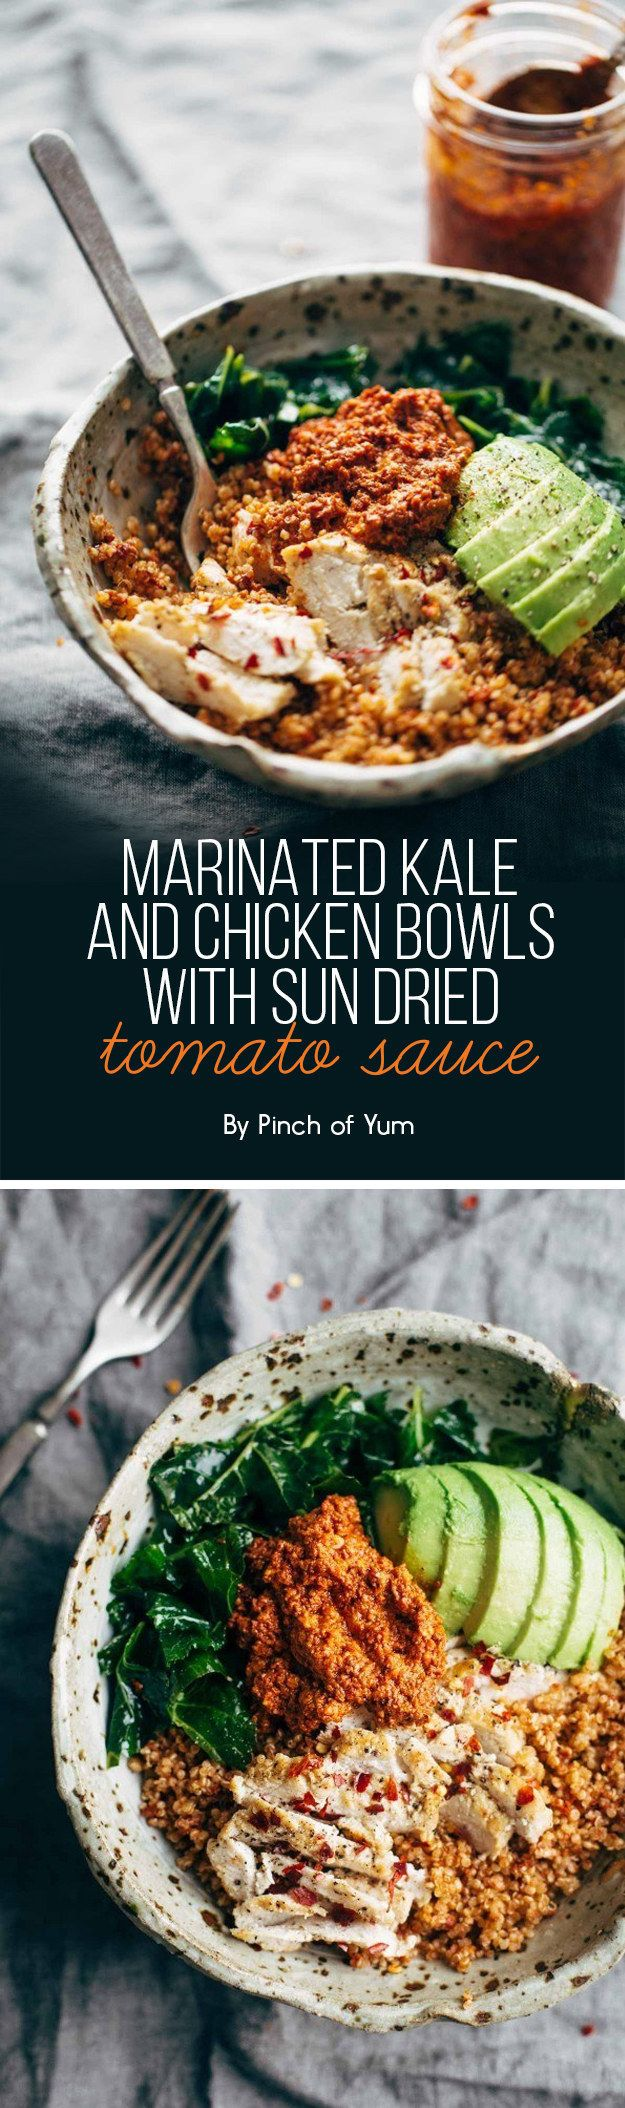 Marinated Kale and Chicken Bowls with Sun Dried Tomato Sauce